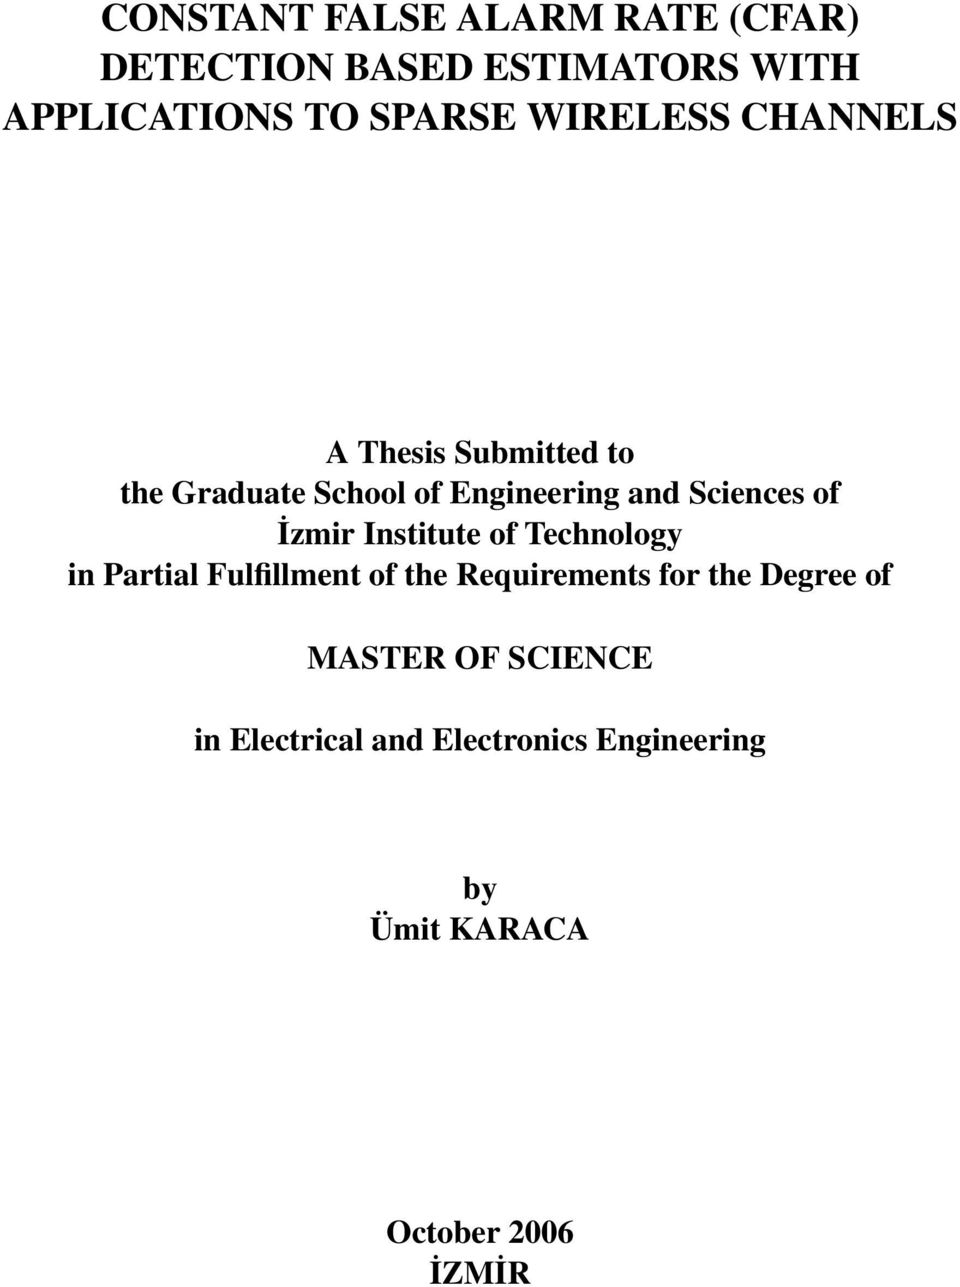 İzmir Institute of Technology in Partial Fulfillment of the Requirements for the Degree of